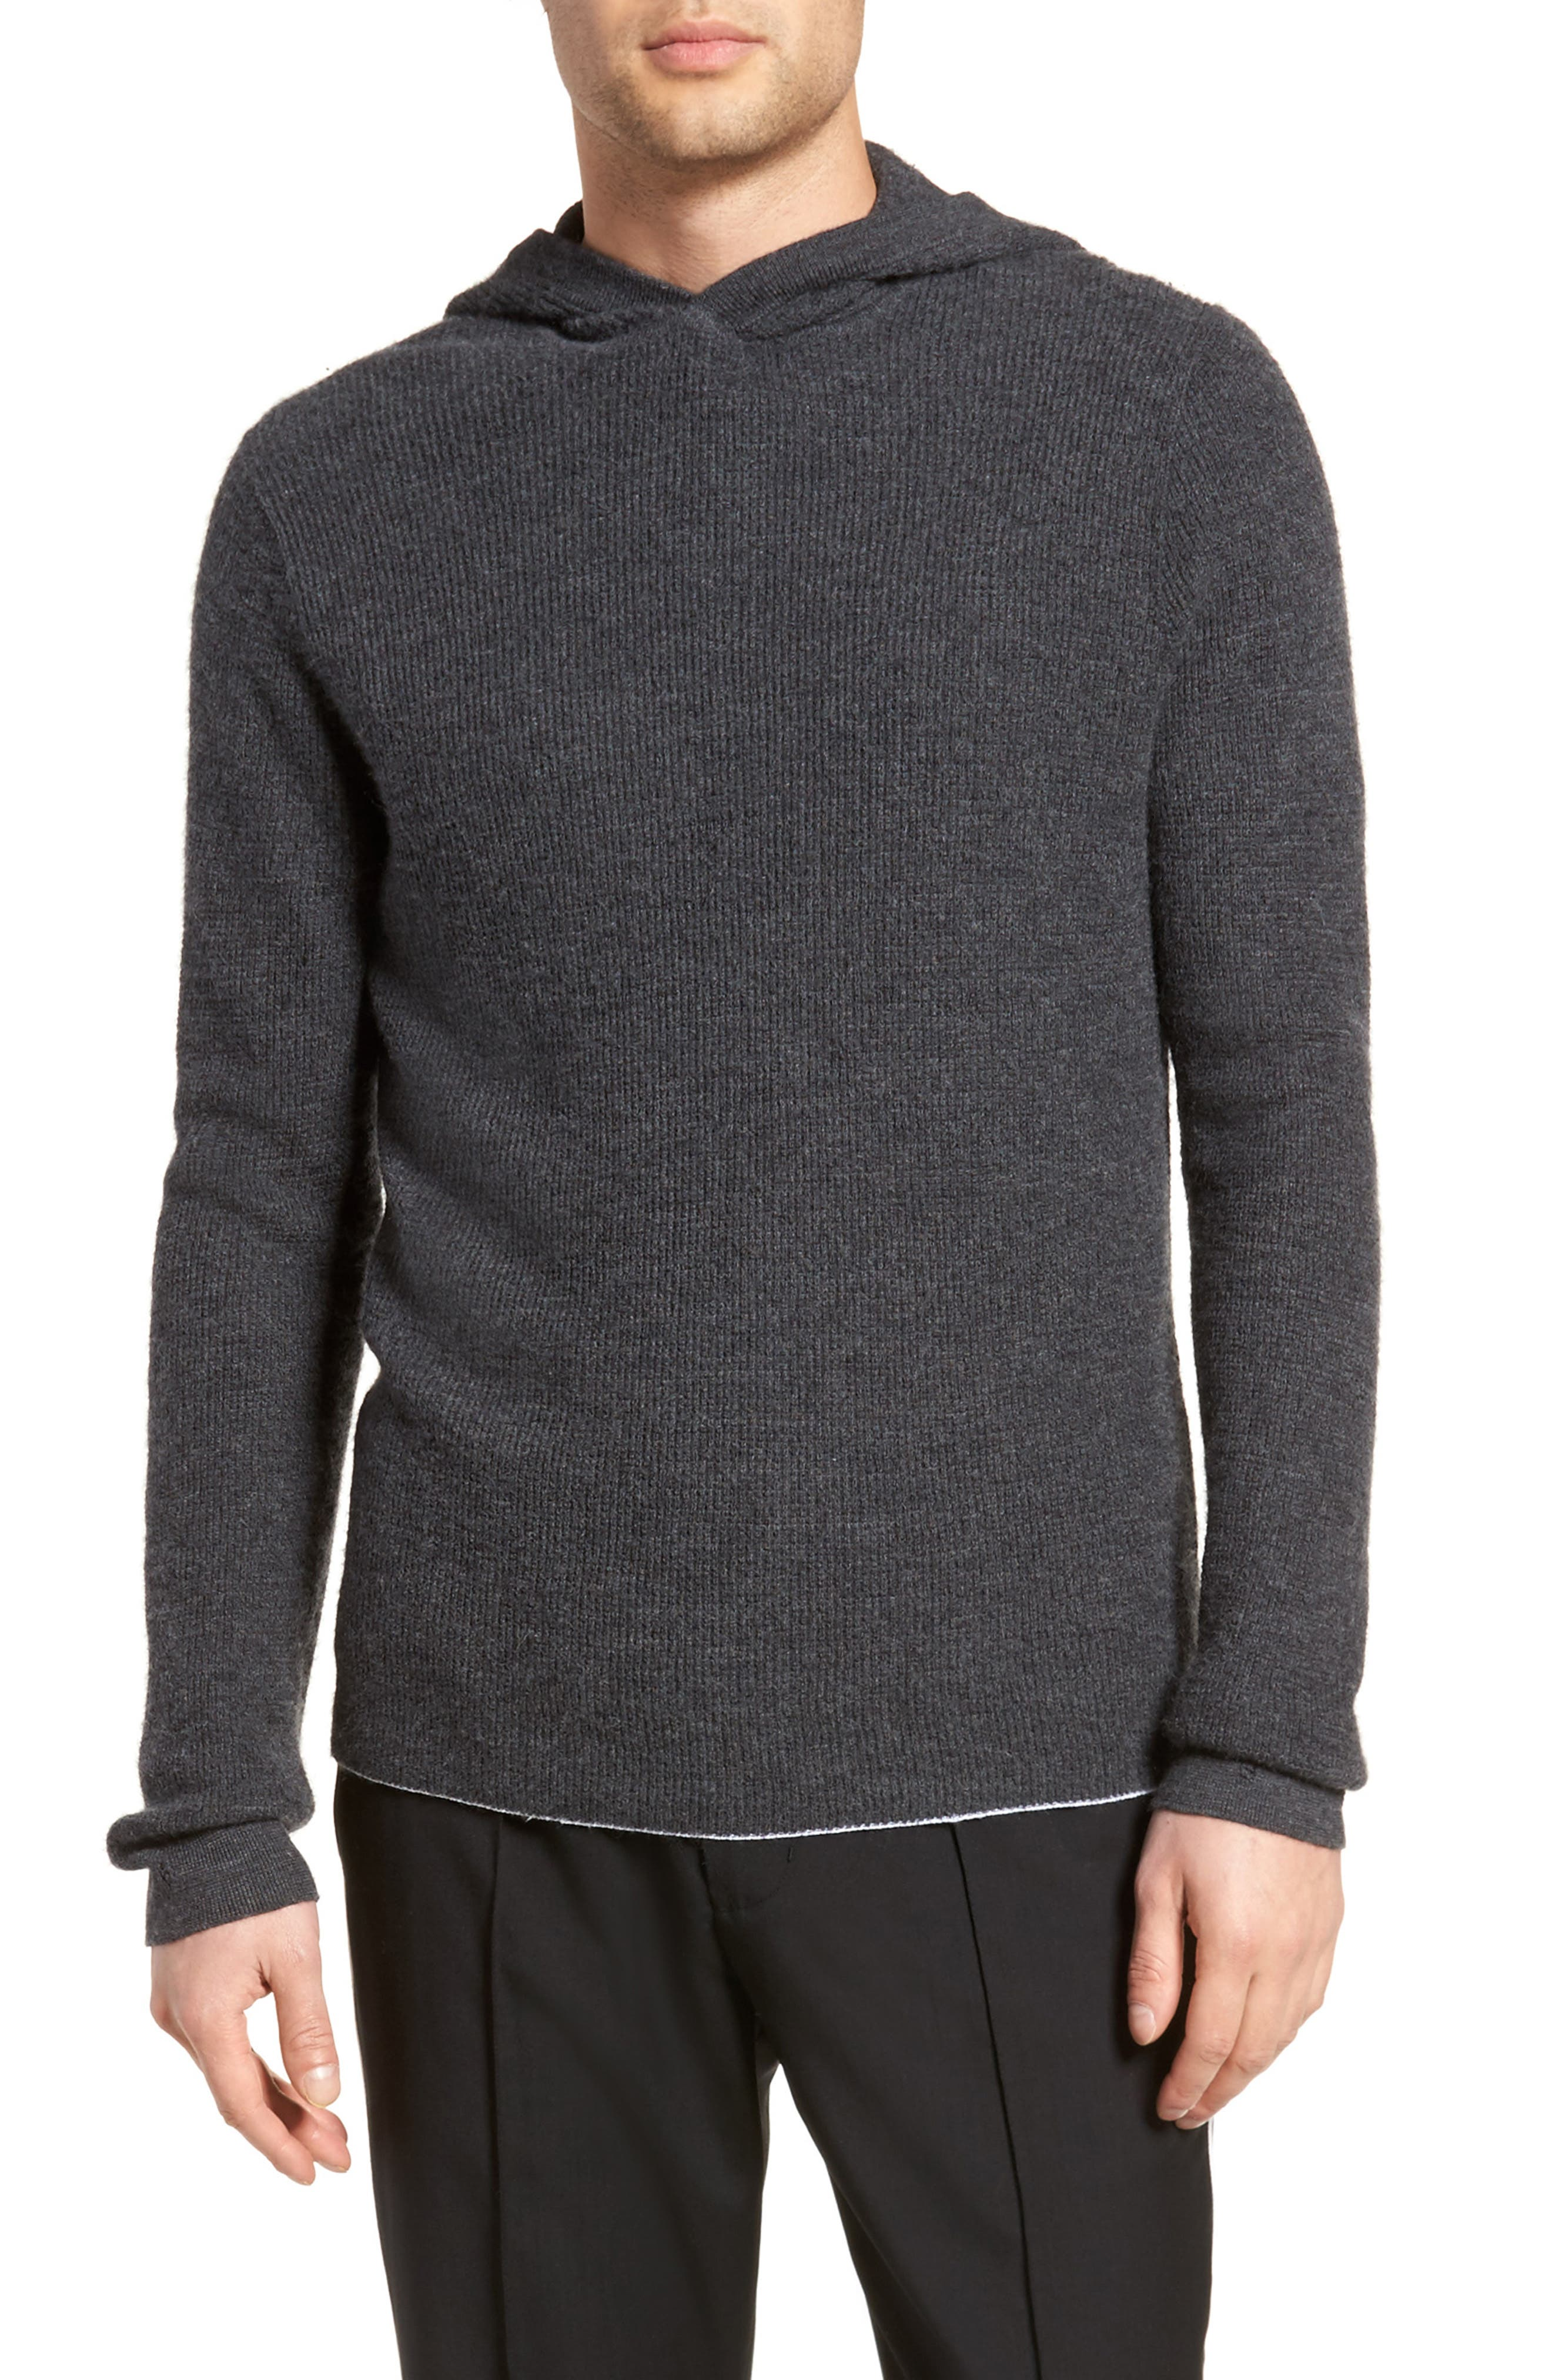 Alternate Image 1 Selected - Vince Thermal Knit Cashmere Hooded Sweater